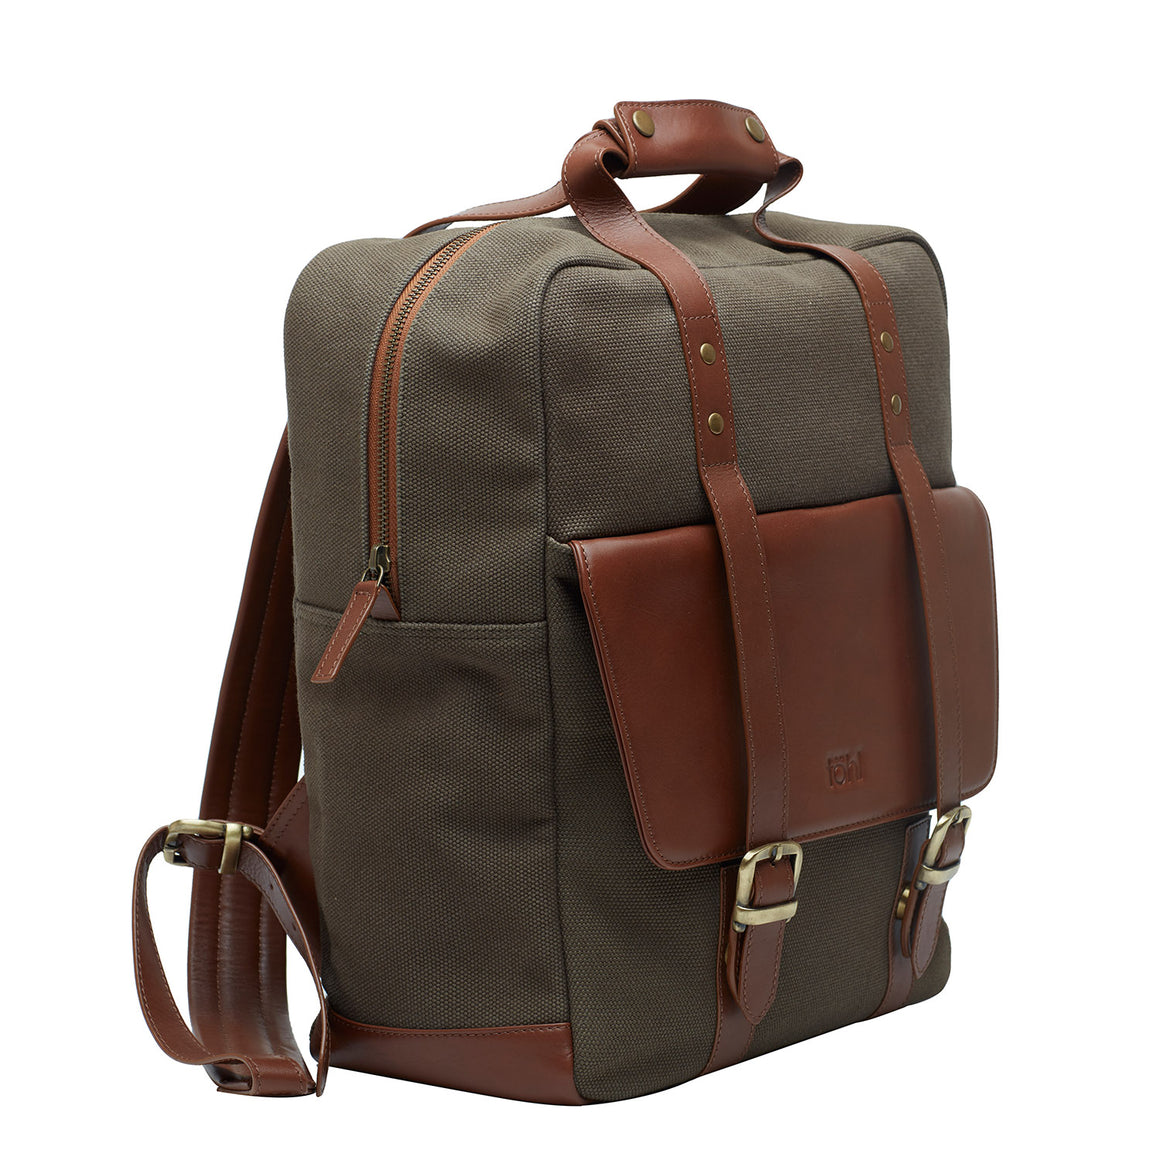 BP 0008 - TOHL ANDREA MEN'S BACKPACK - OLIVE